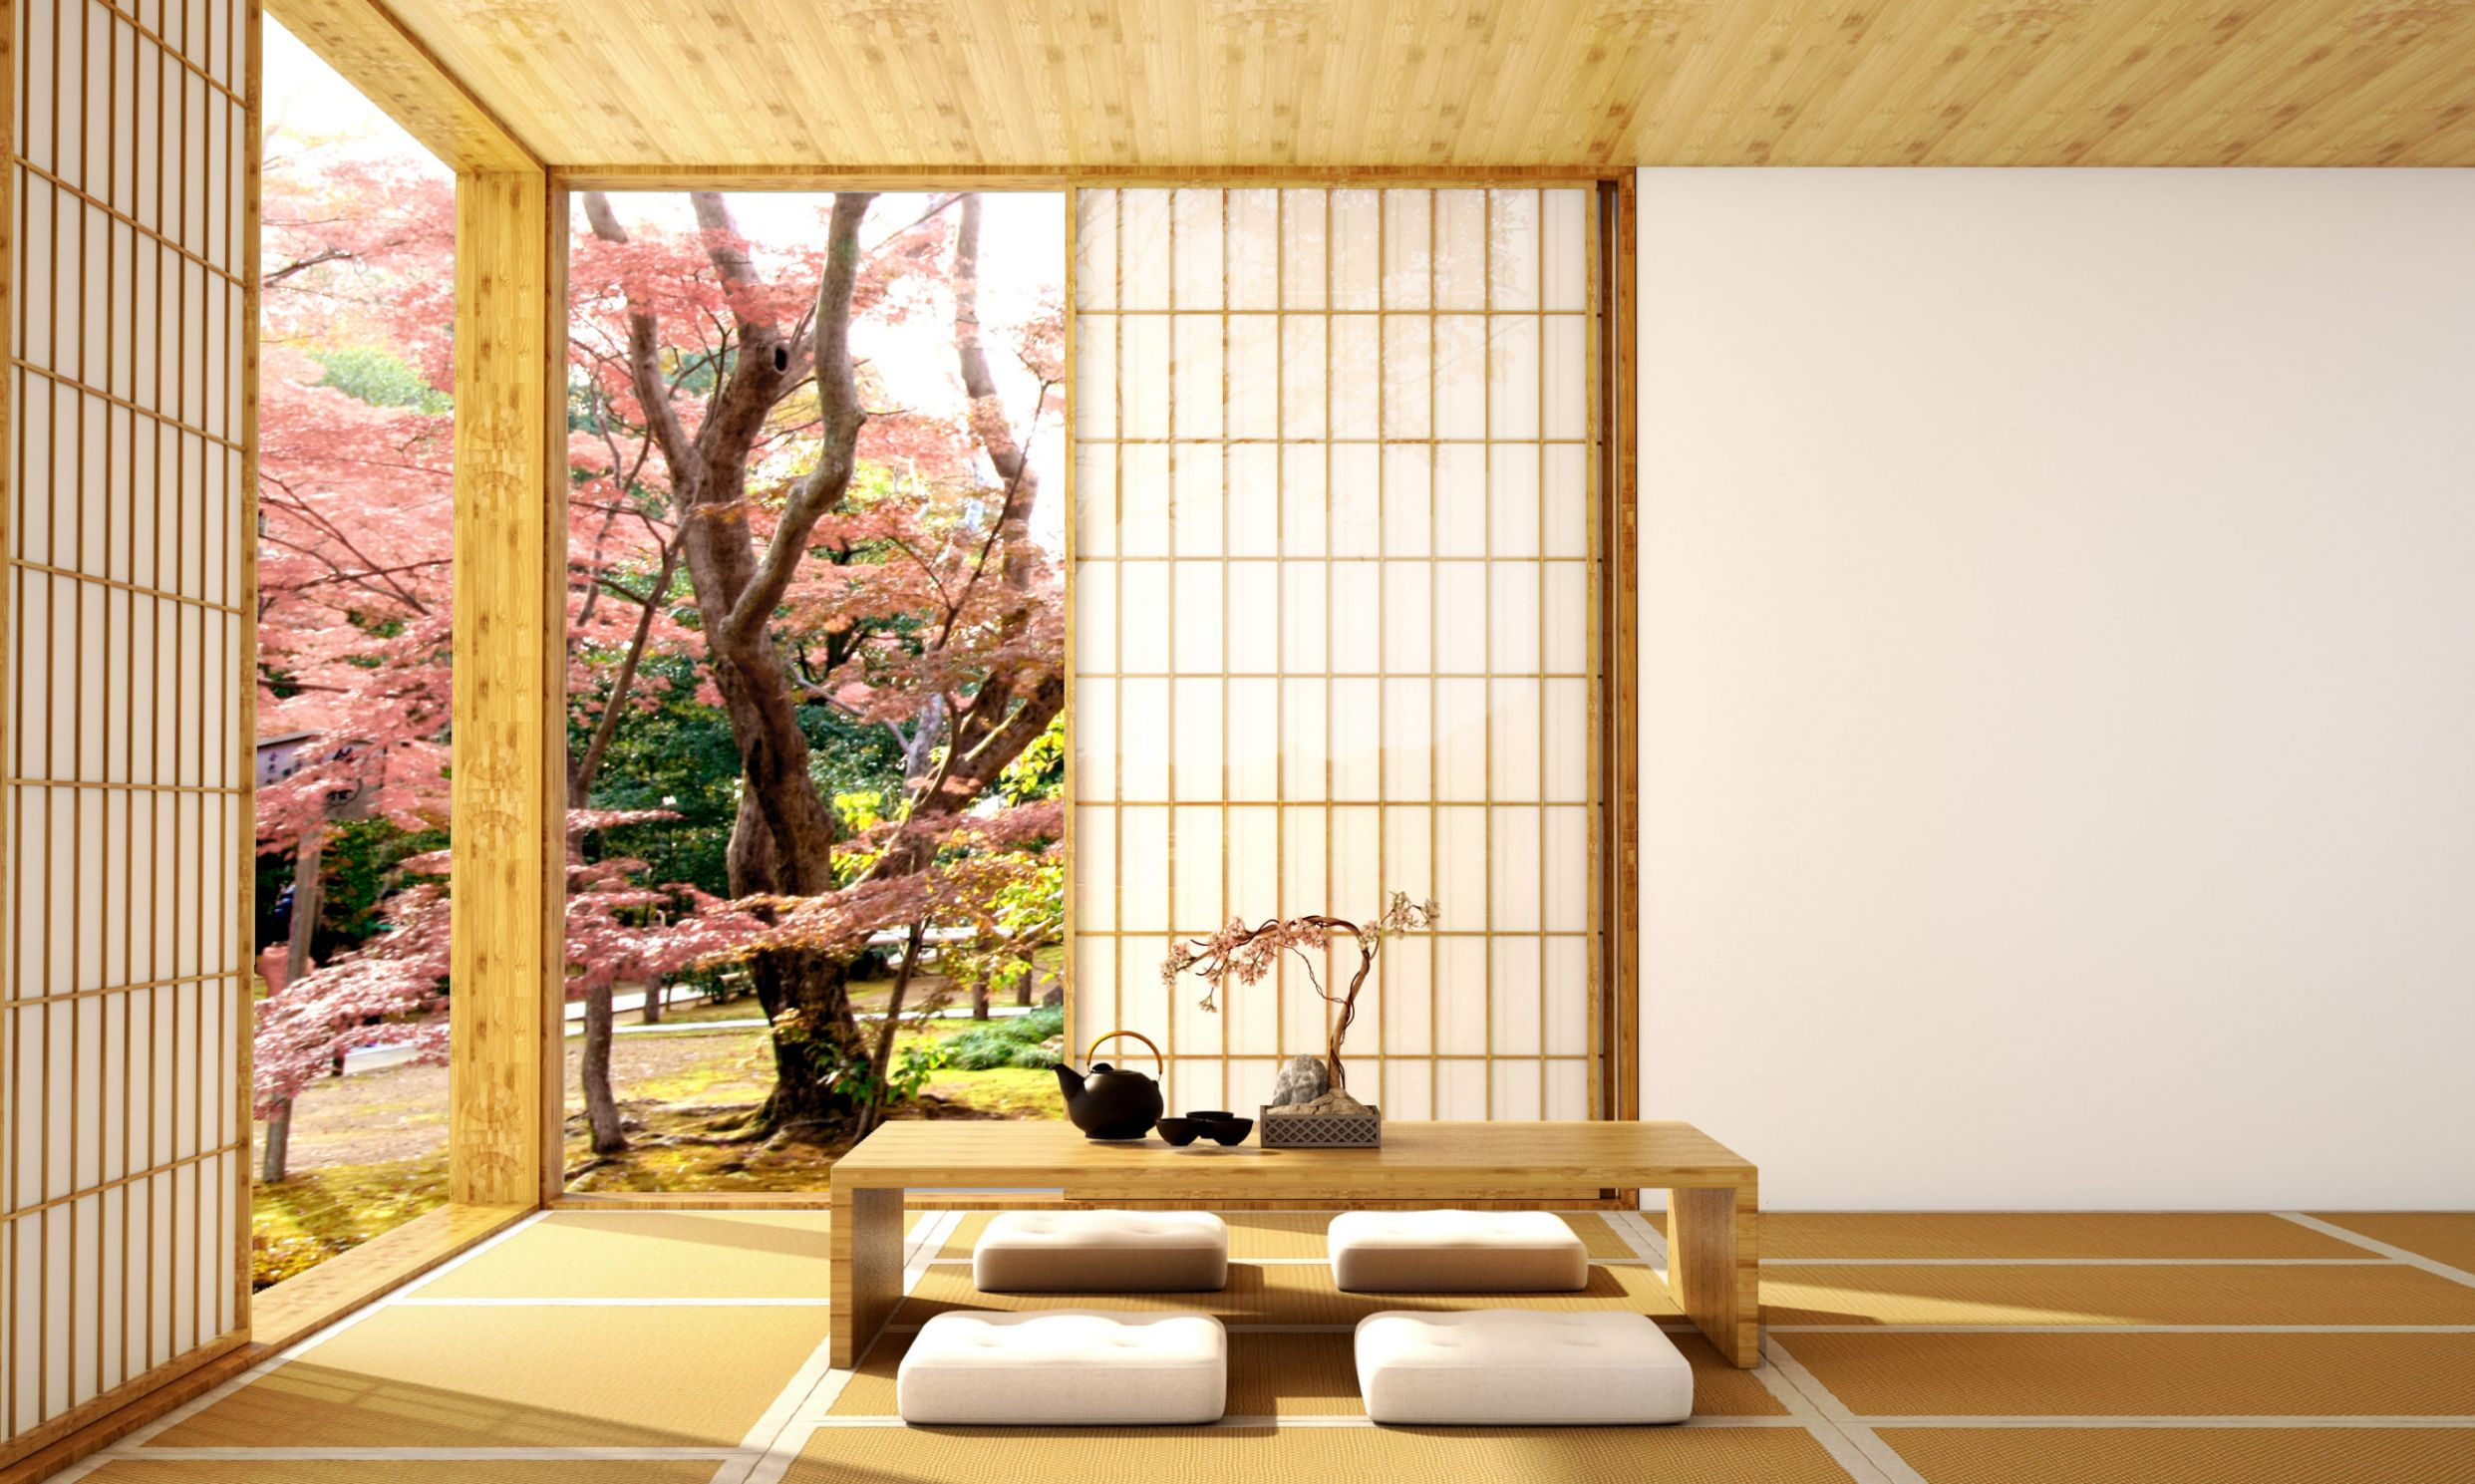 How To Make Your Home Totally Zen in 10 Steps | Freshome.com